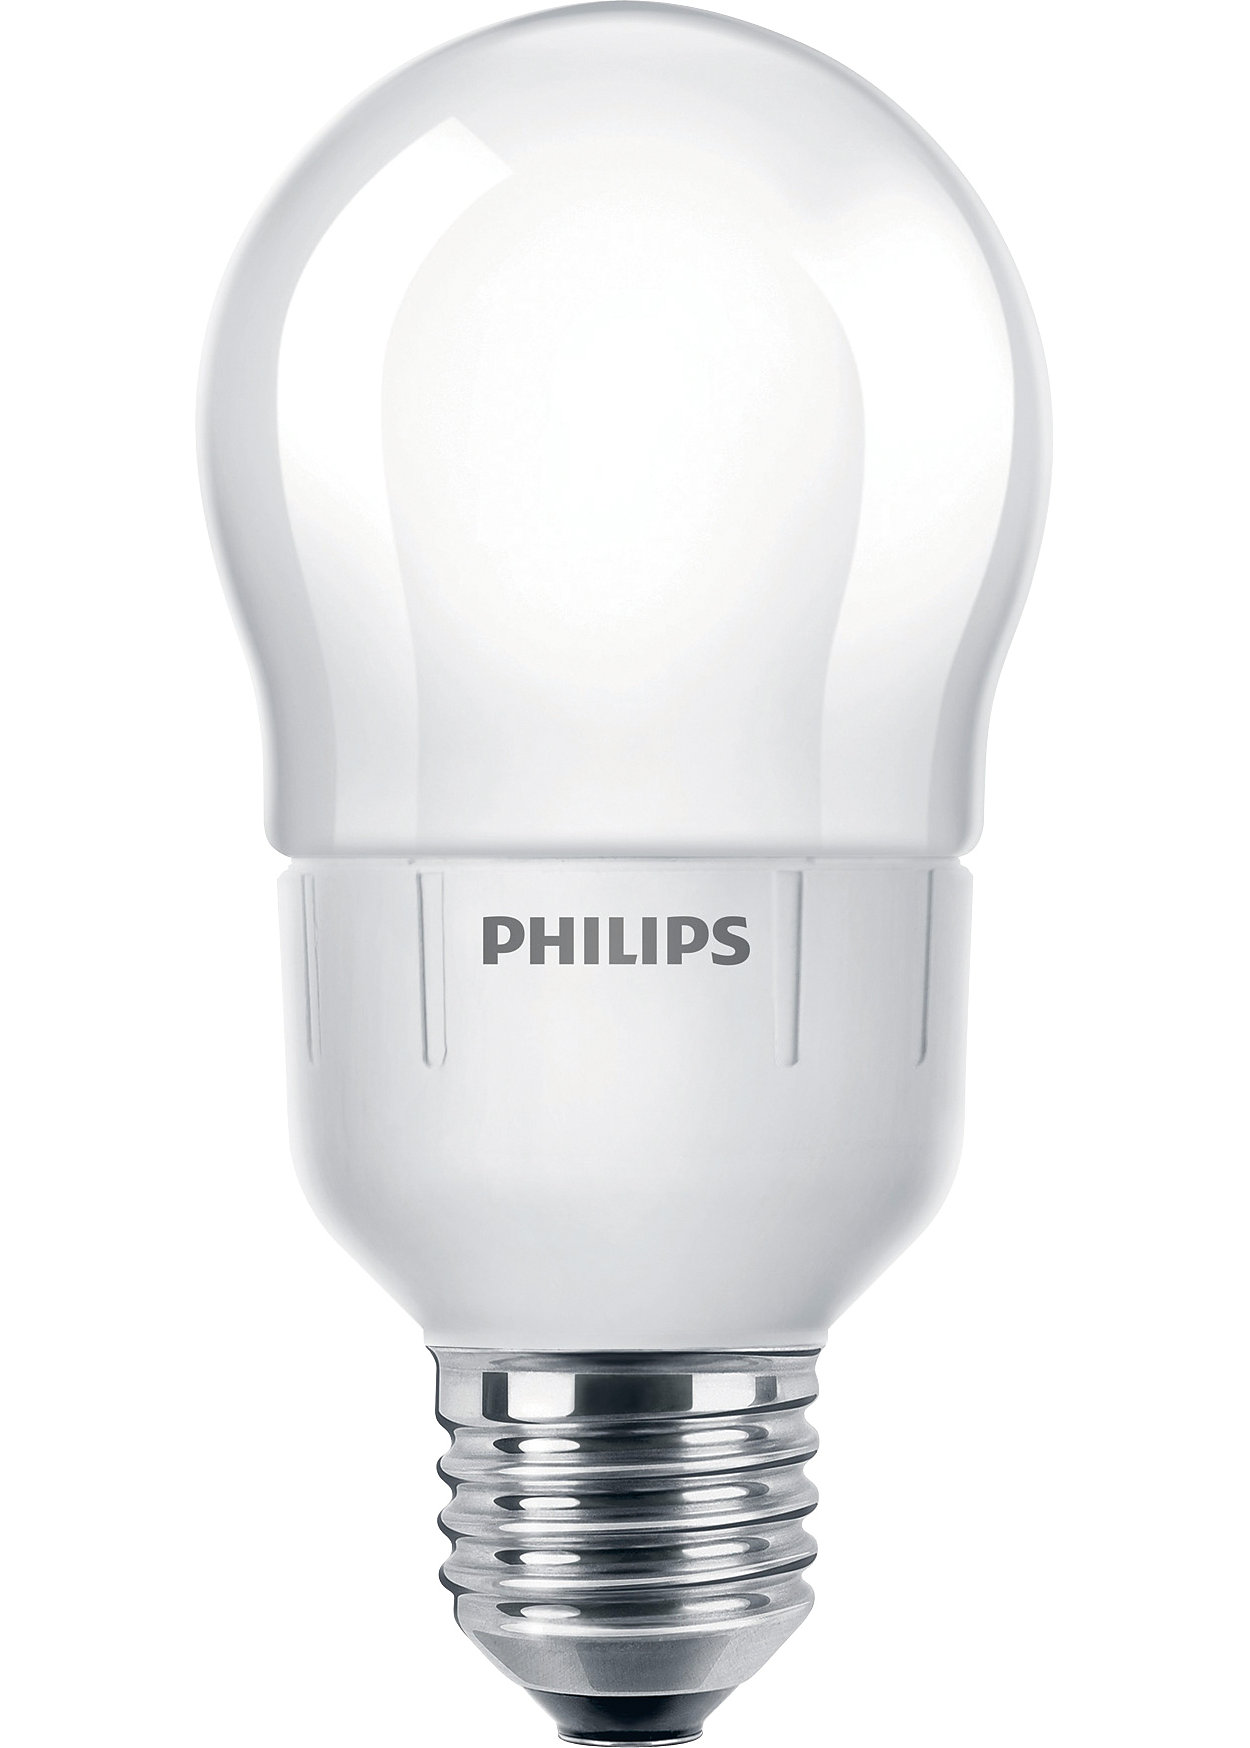 Energy Saving Lamp combines superior performance with soft warm light and traditional bulb design